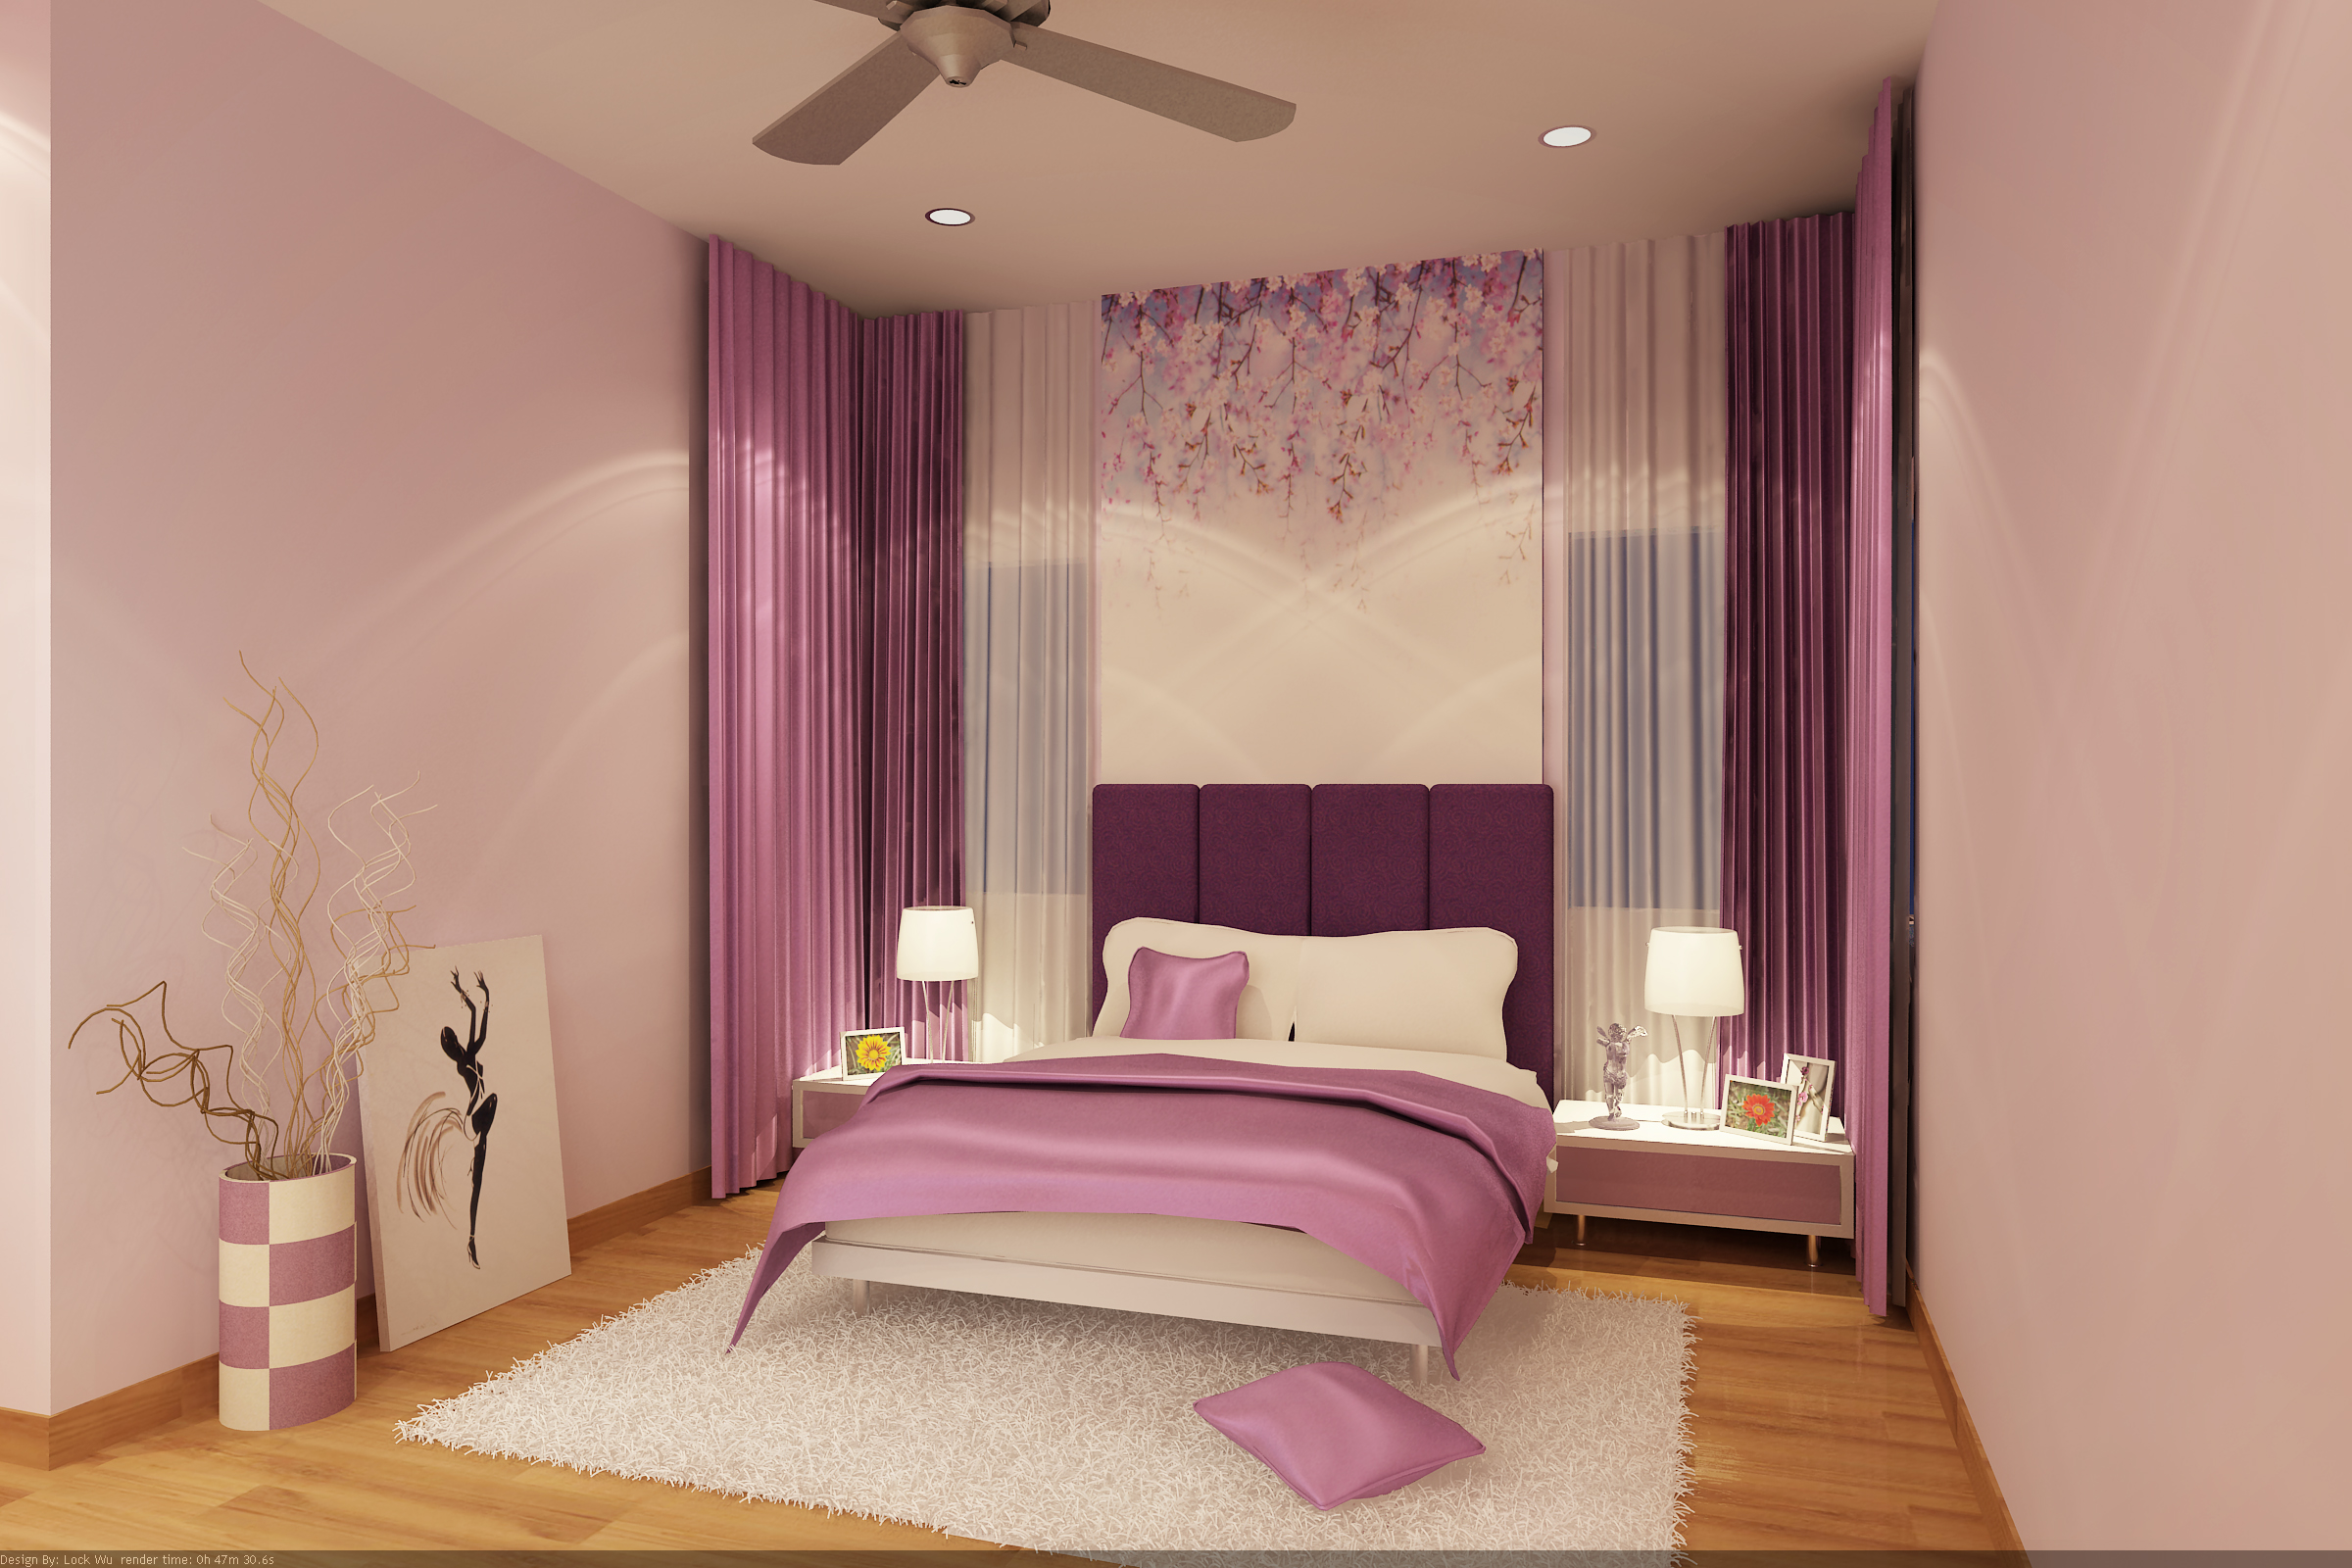 Residential projects by savita menon at for Bedroom ideas 13 year old boy